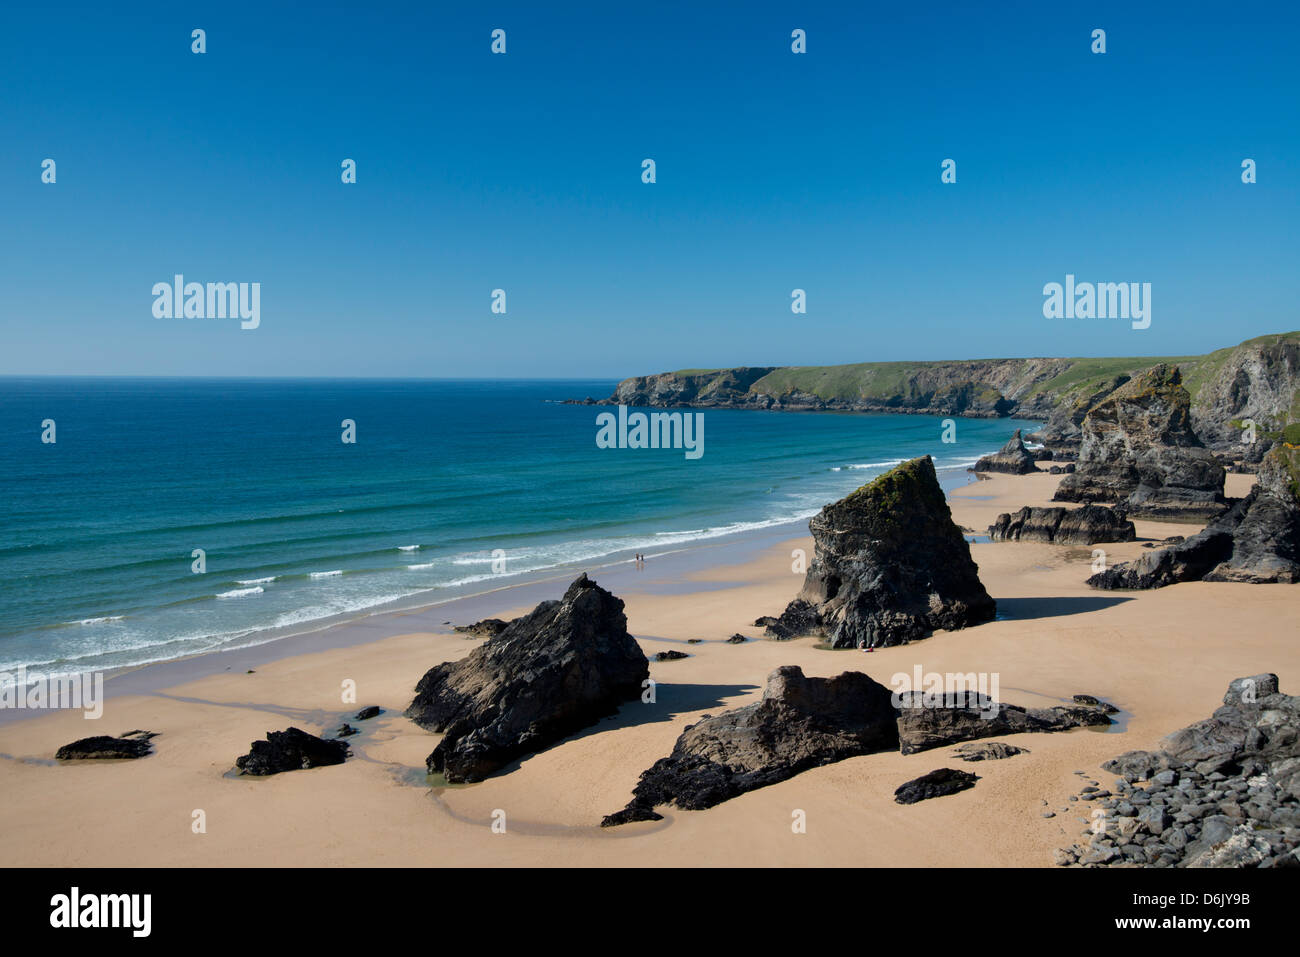 A view of The Bedruthan Steps, Cornwall, England, United Kingdom, Europe - Stock Image